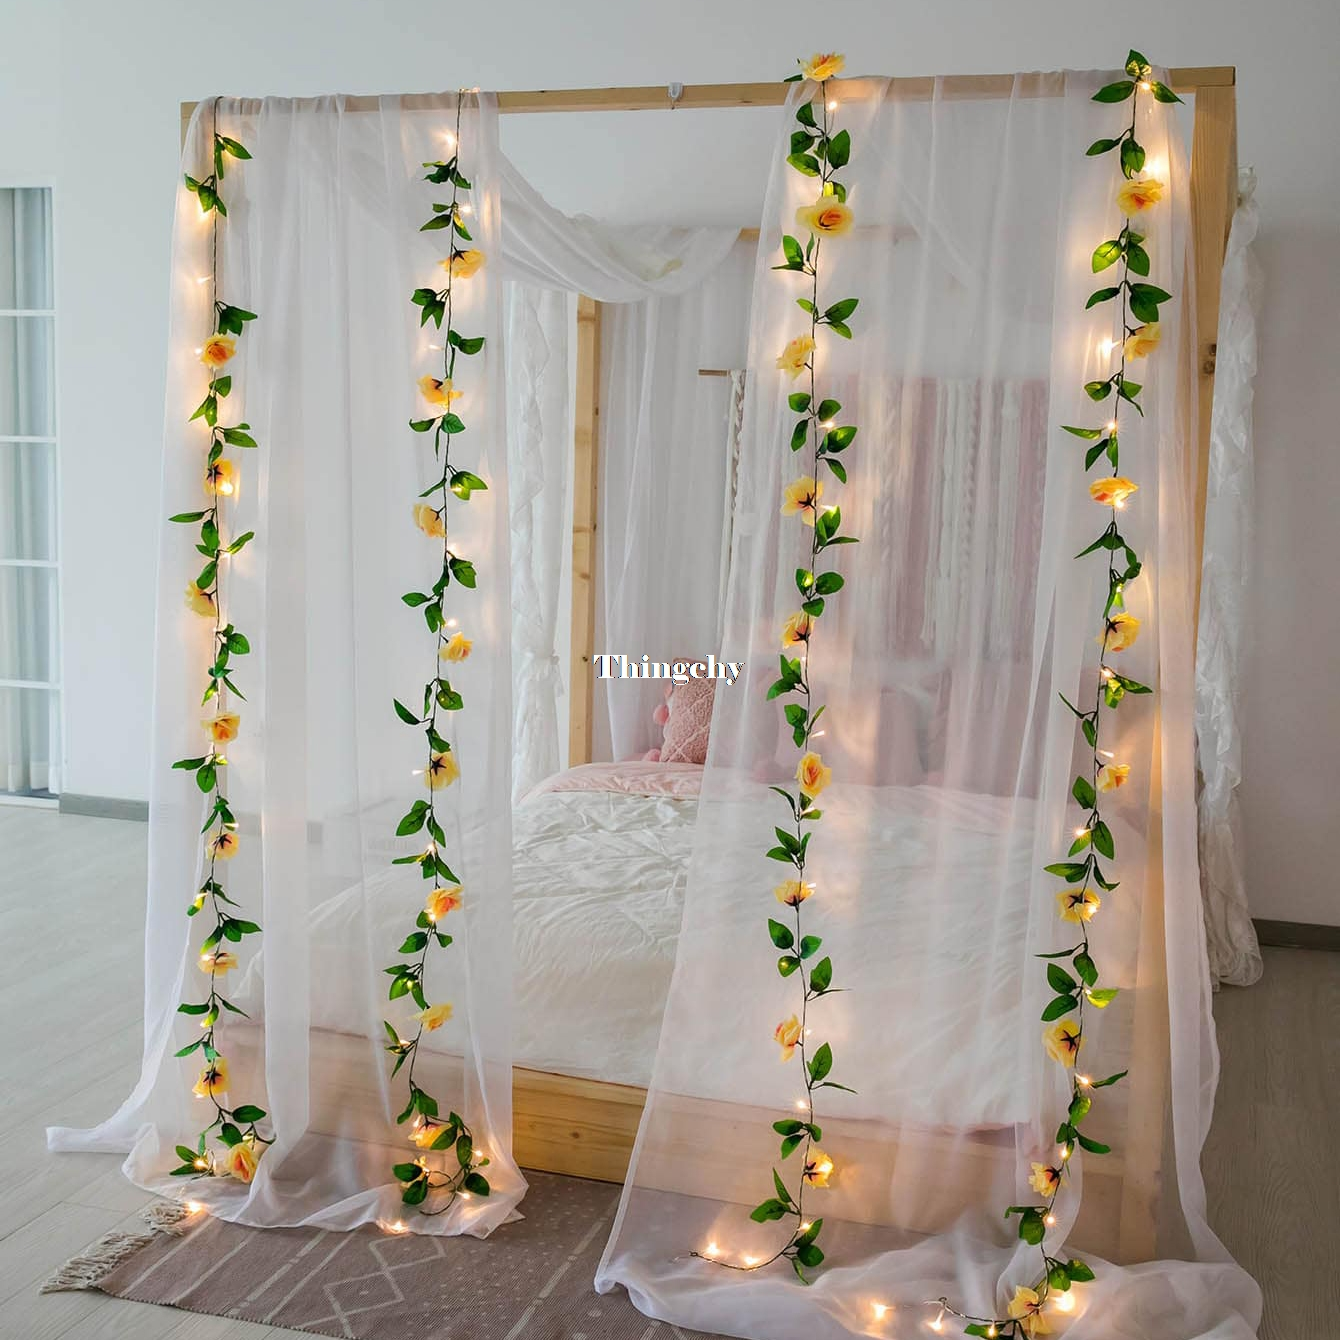 2.4M Rose Flower Decorative Garland Battery Copper LED Fairy String Lights For Christmas Wedding Decoration Party Event